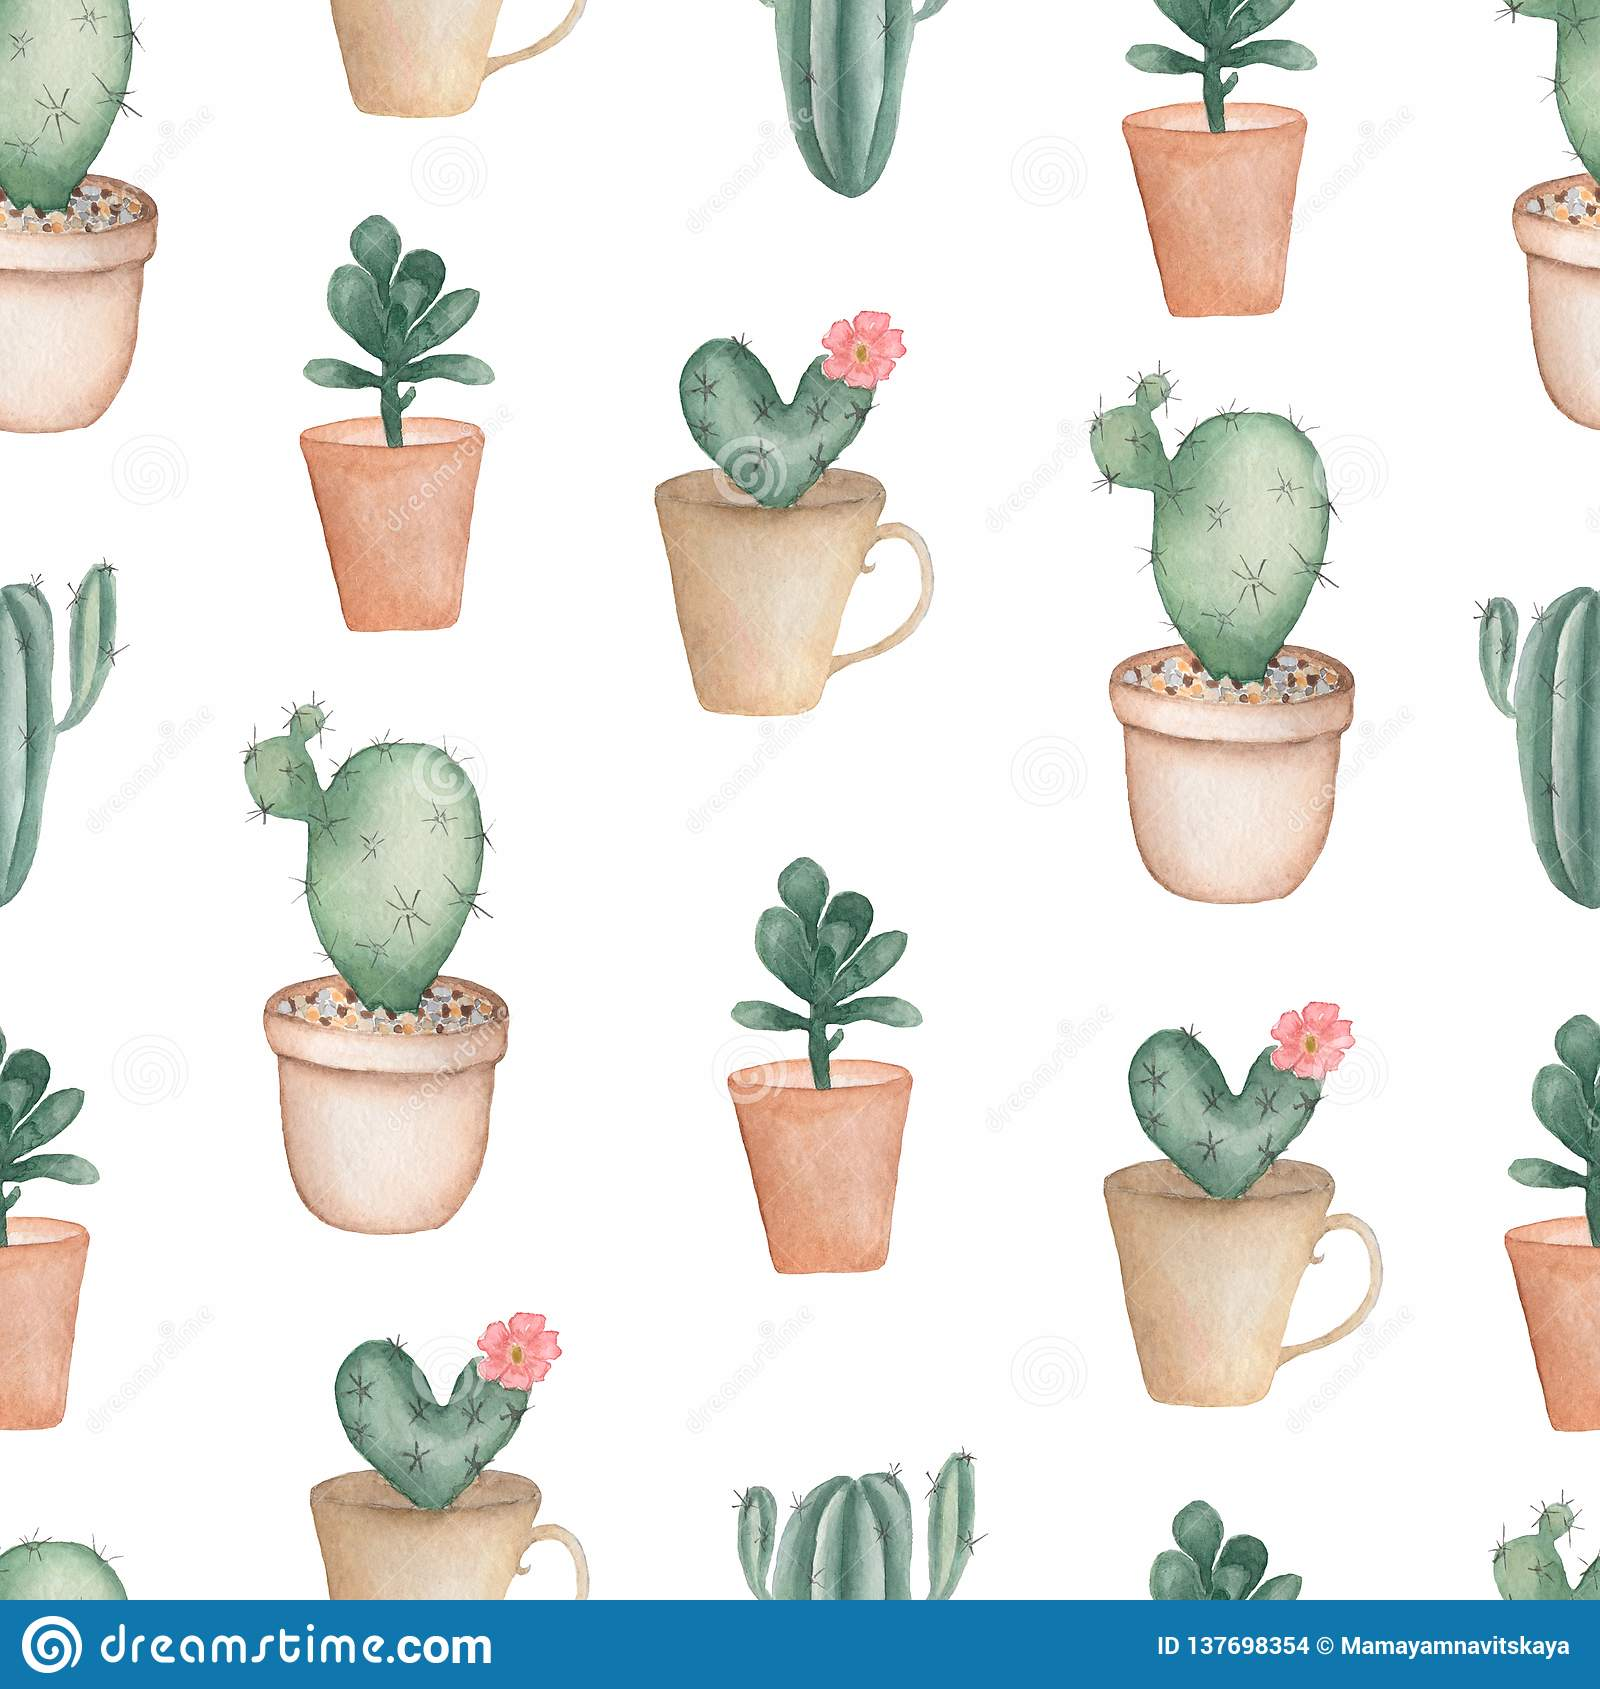 Cacti Flower Background Seamless Pattern With Cactus And Succulents In Pots Hand Drawn Illustration In Trendy Cute Cartoon Style Stock Illustration Illustration Of Blossom Collection 137698354